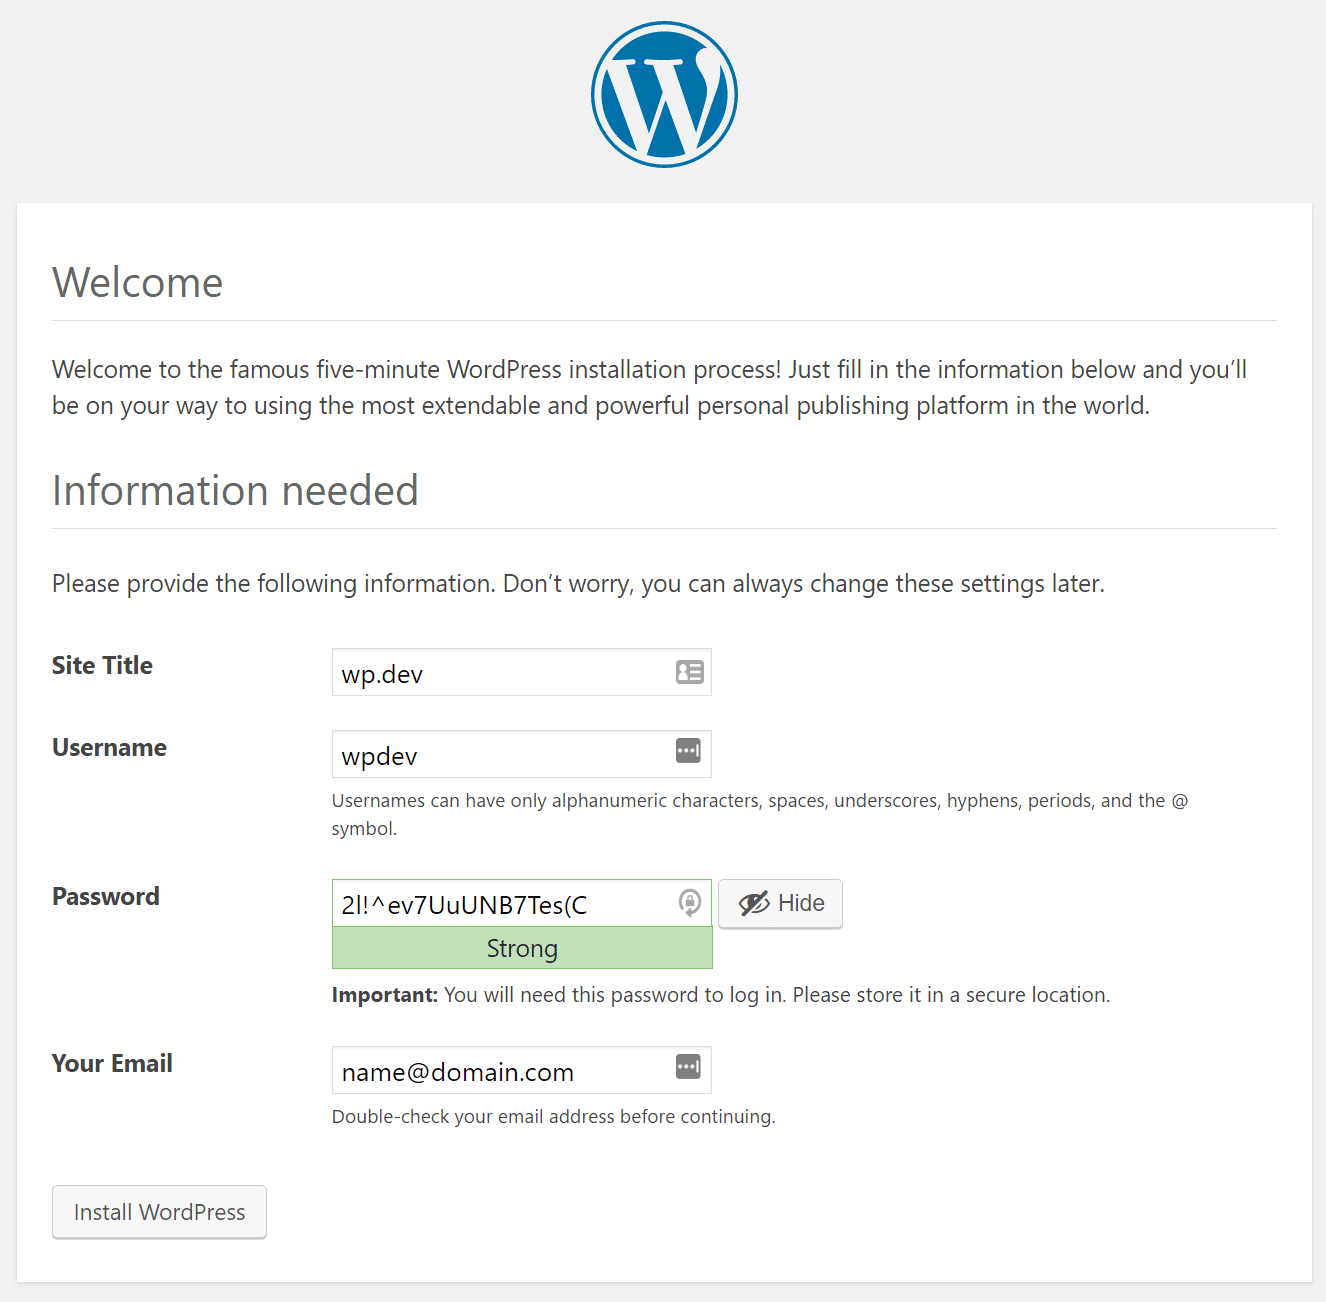 Installazione di WordPress